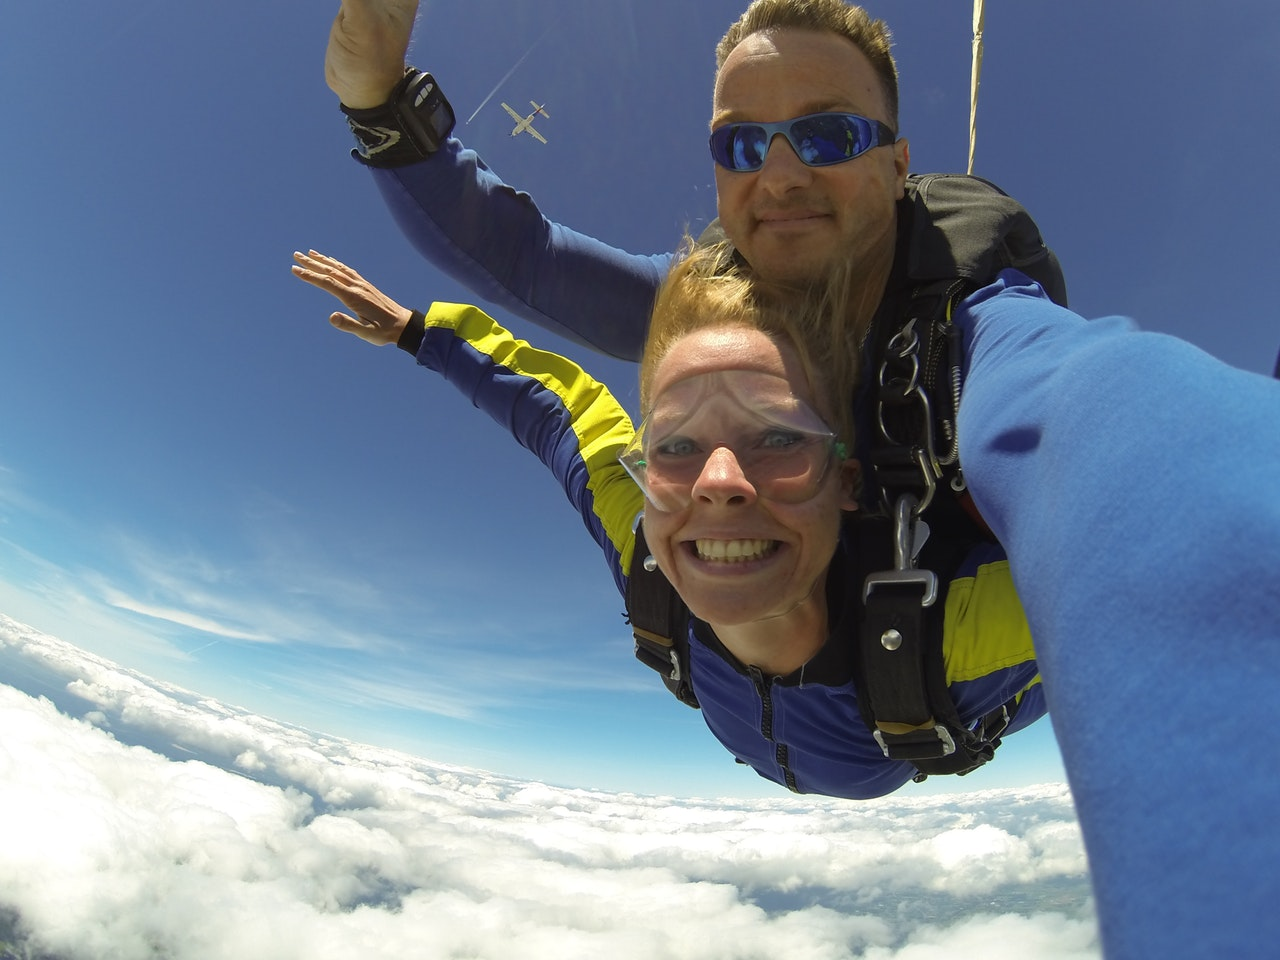 How do you feel about risk? What is your response to it? -